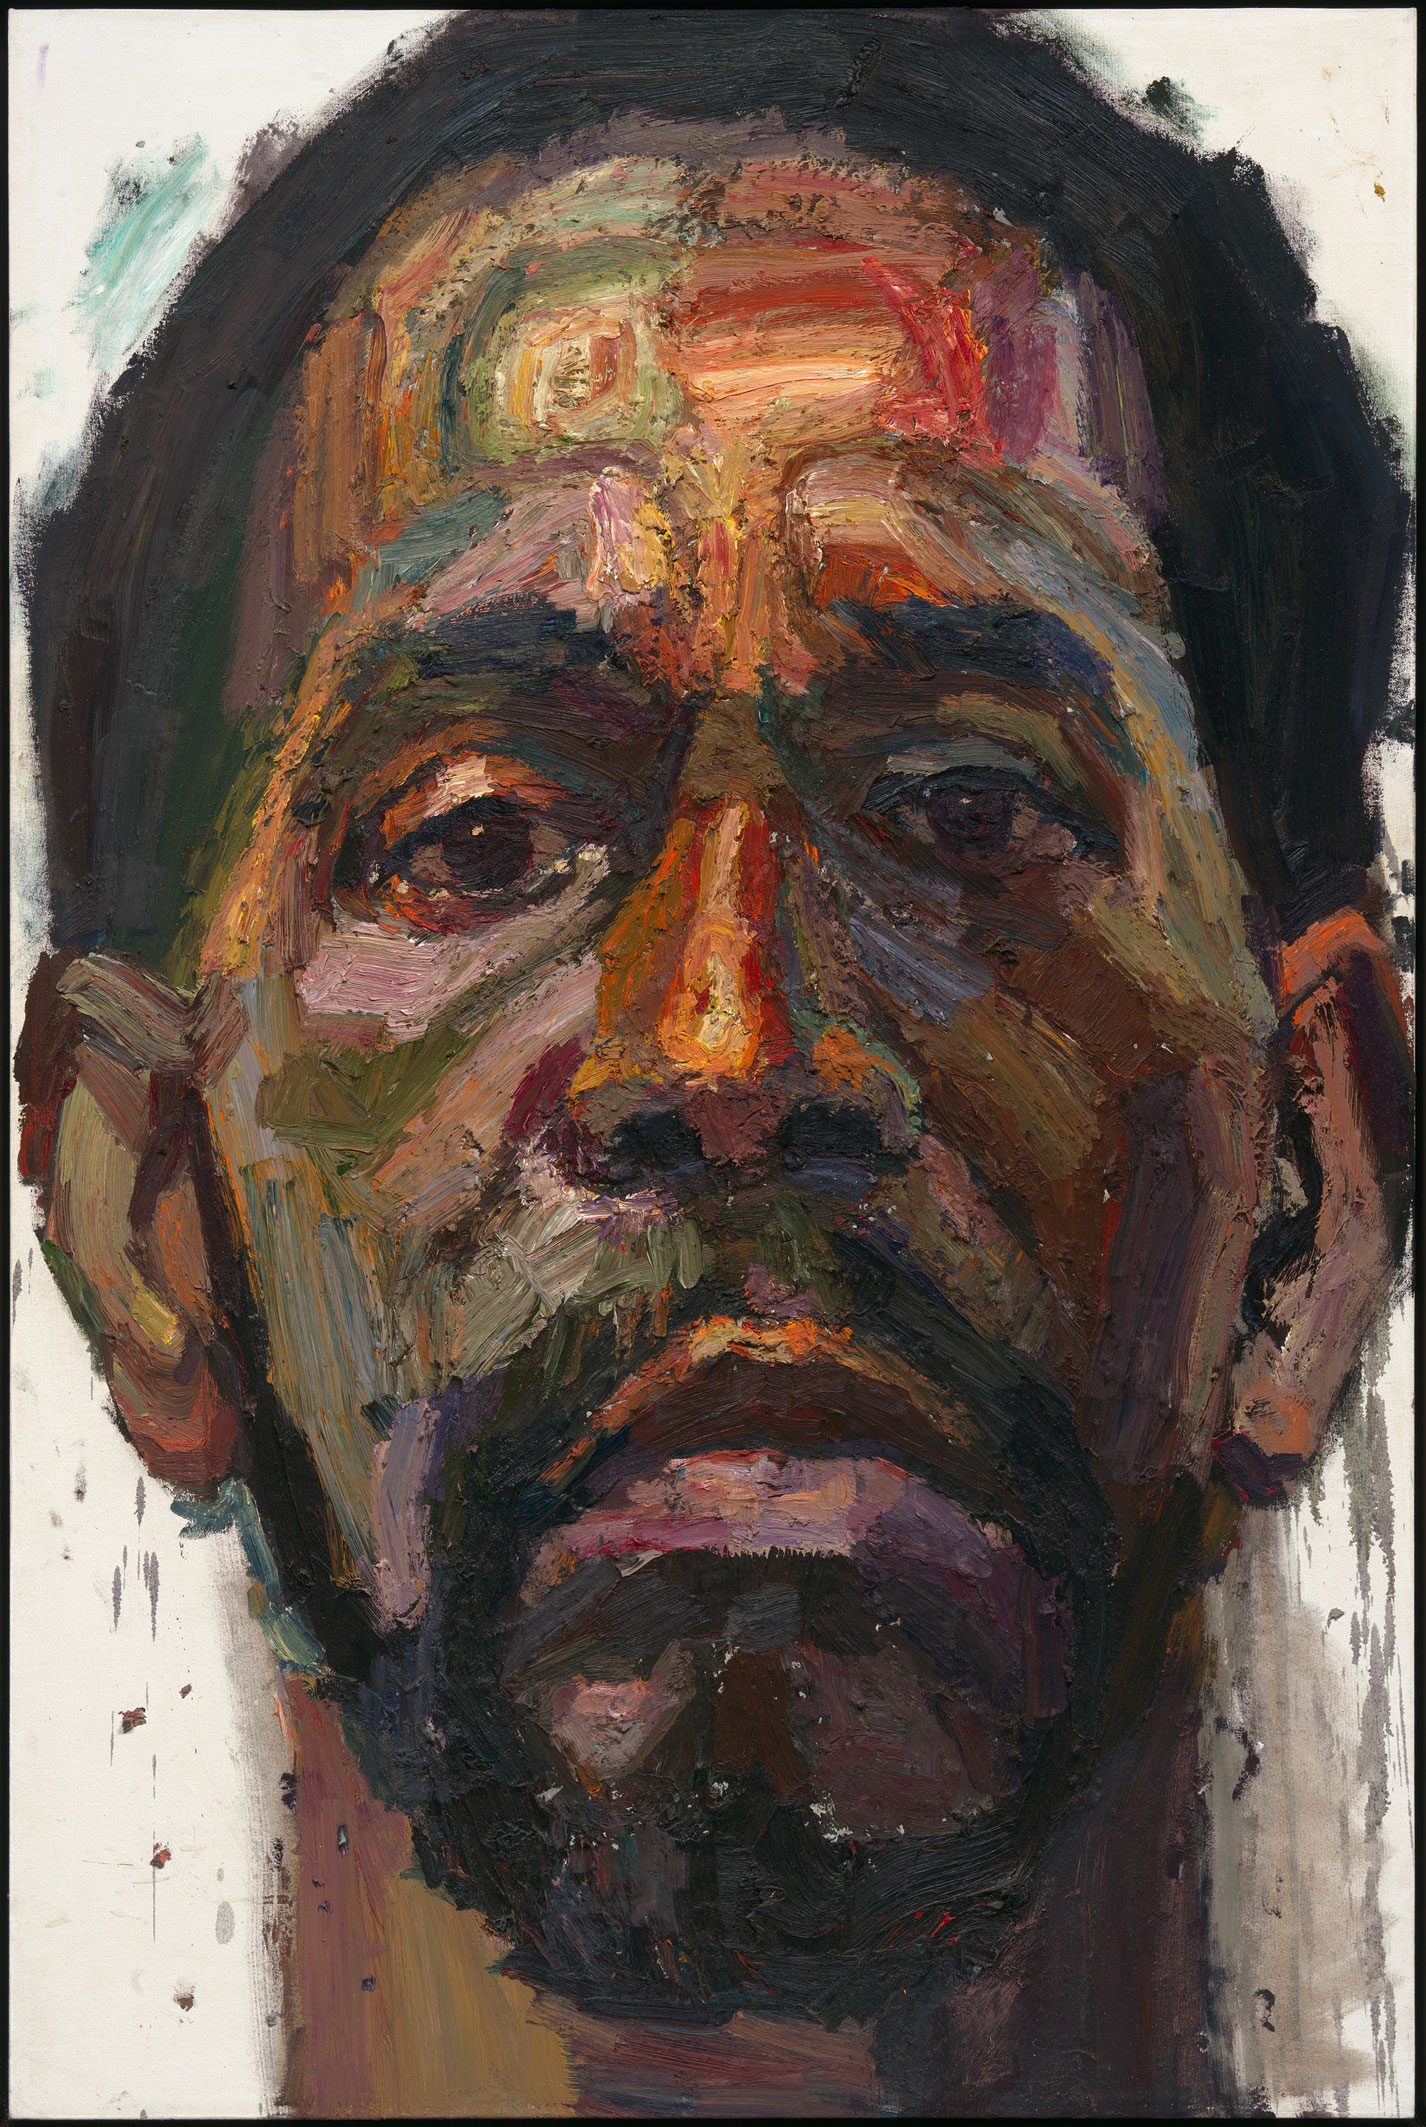 Sedrick, Sed, Daddy by Sedrick Huckaby Oil on canvas 2014 Beverly and George Palmer; courtesy of Valley House Gallery & Sculpture Garden,Dallas, Texas © Sedrick Huckaby